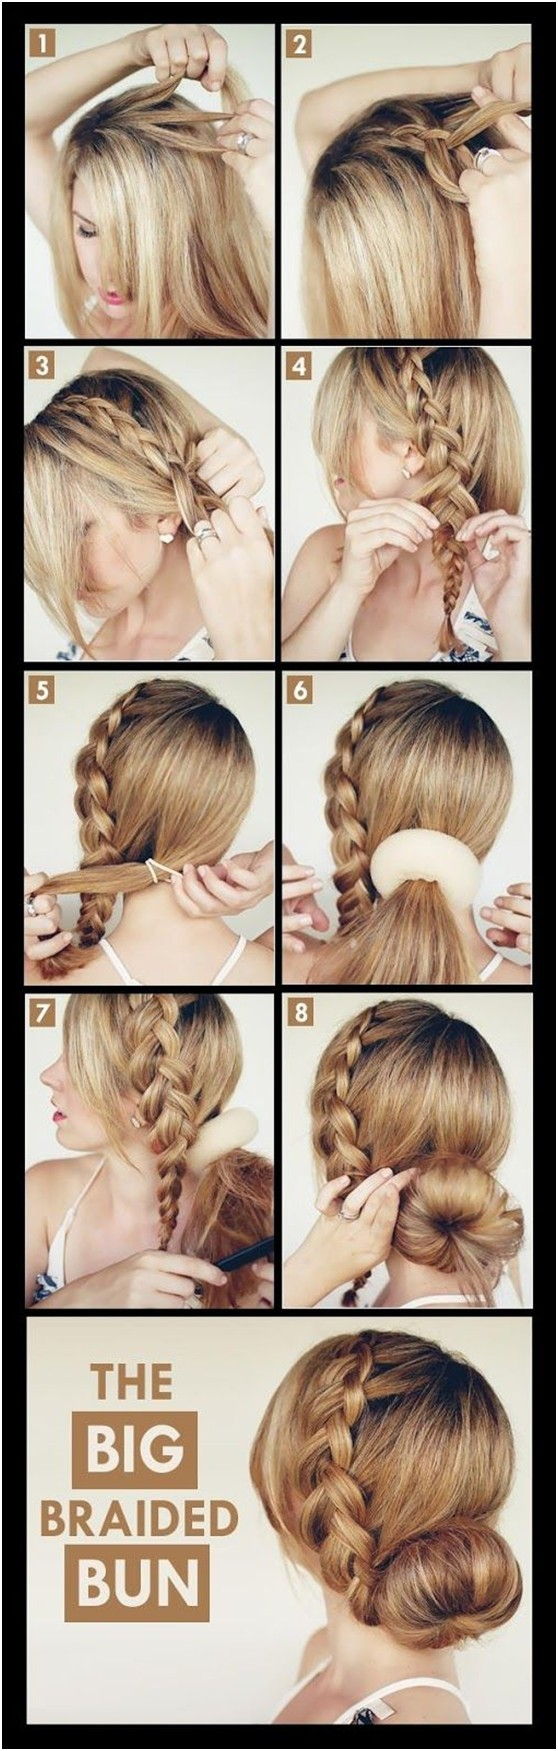 Surprising 15 Braided Updo Hairstyles Tutorials Pretty Designs Hairstyle Inspiration Daily Dogsangcom